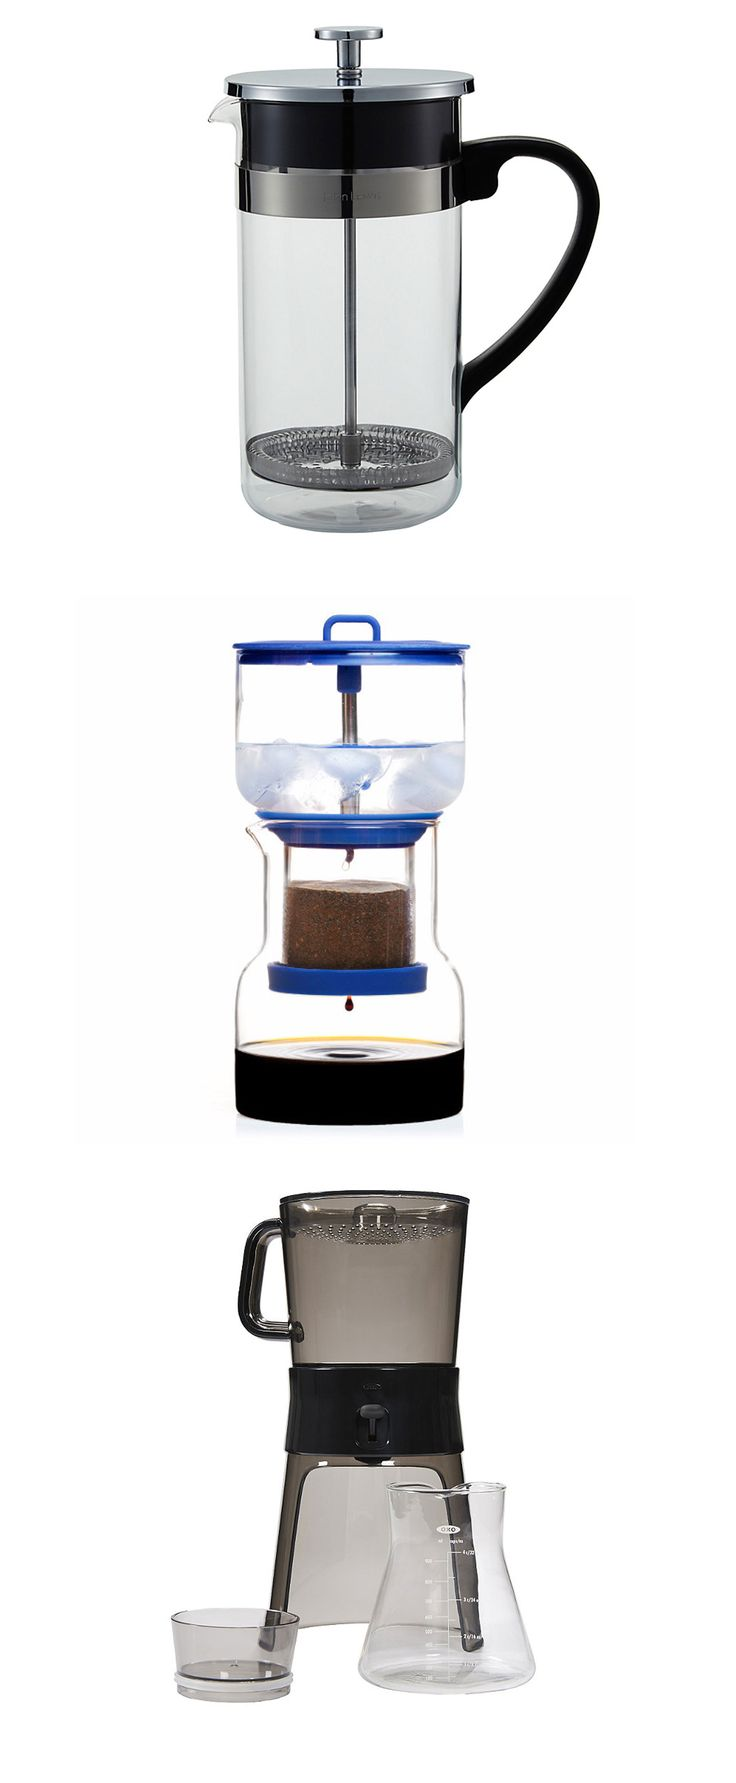 Aerobie Aeropress Coffee Maker John Lewis : The 25+ best ideas about Cold Coffee Brewer on Pinterest Coffee dripper, Ceramics and Japanese ...